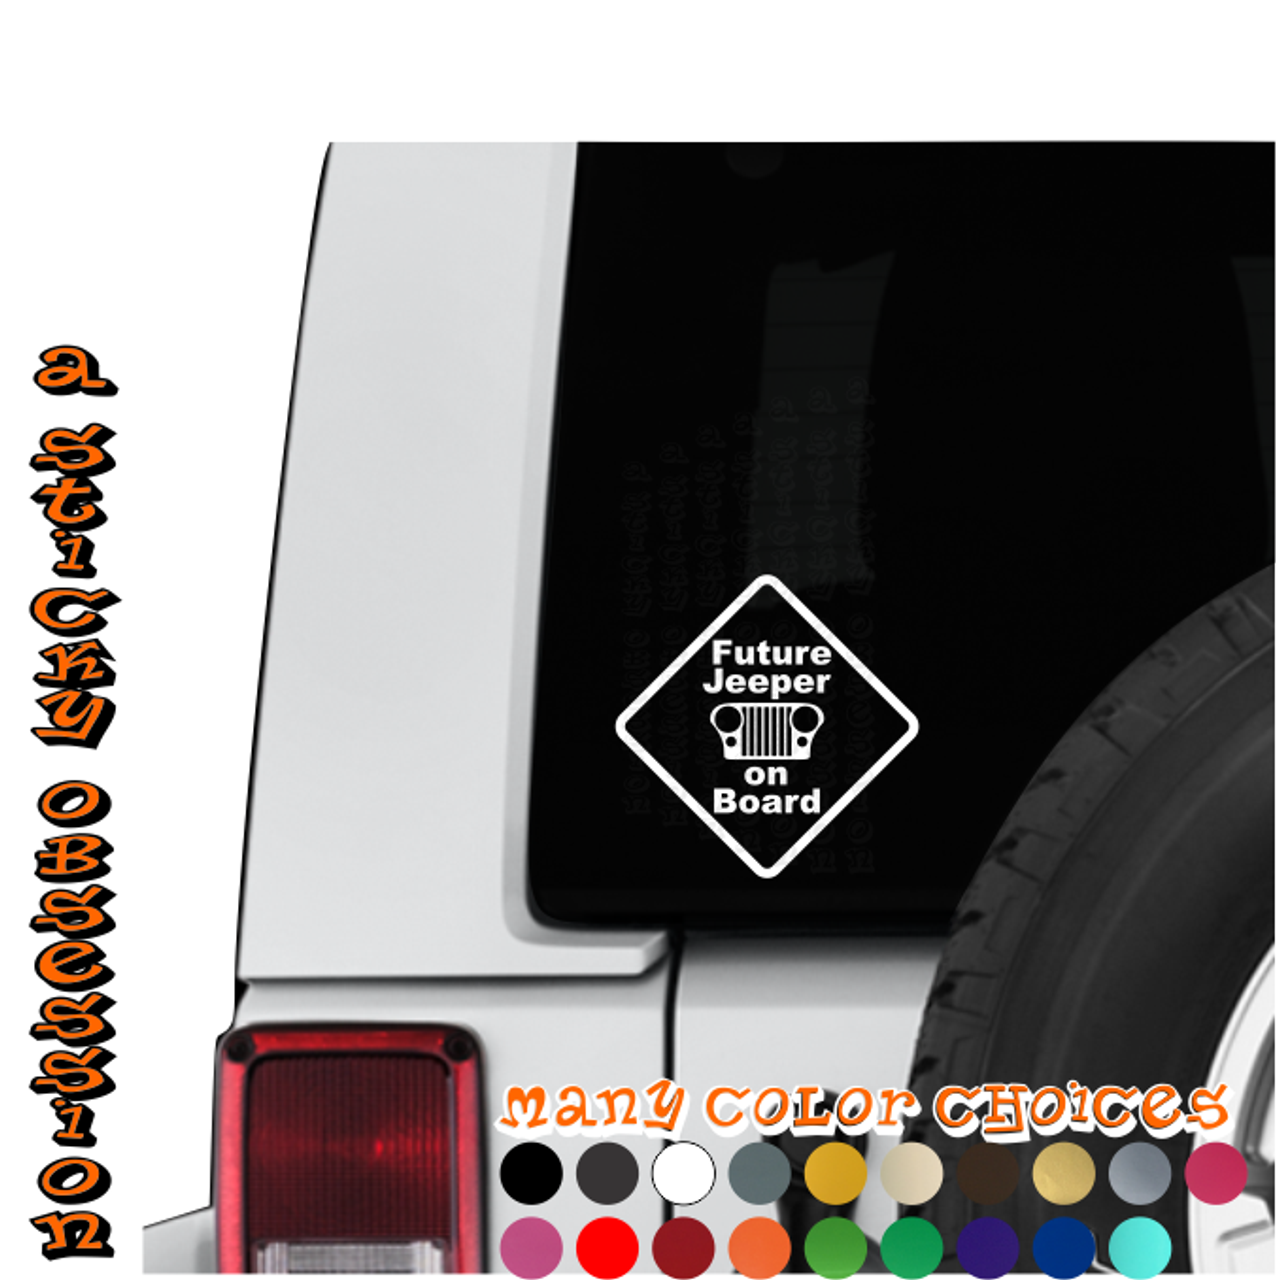 Future jeeper on board jeep wrangler cj custom die cut decal sticker